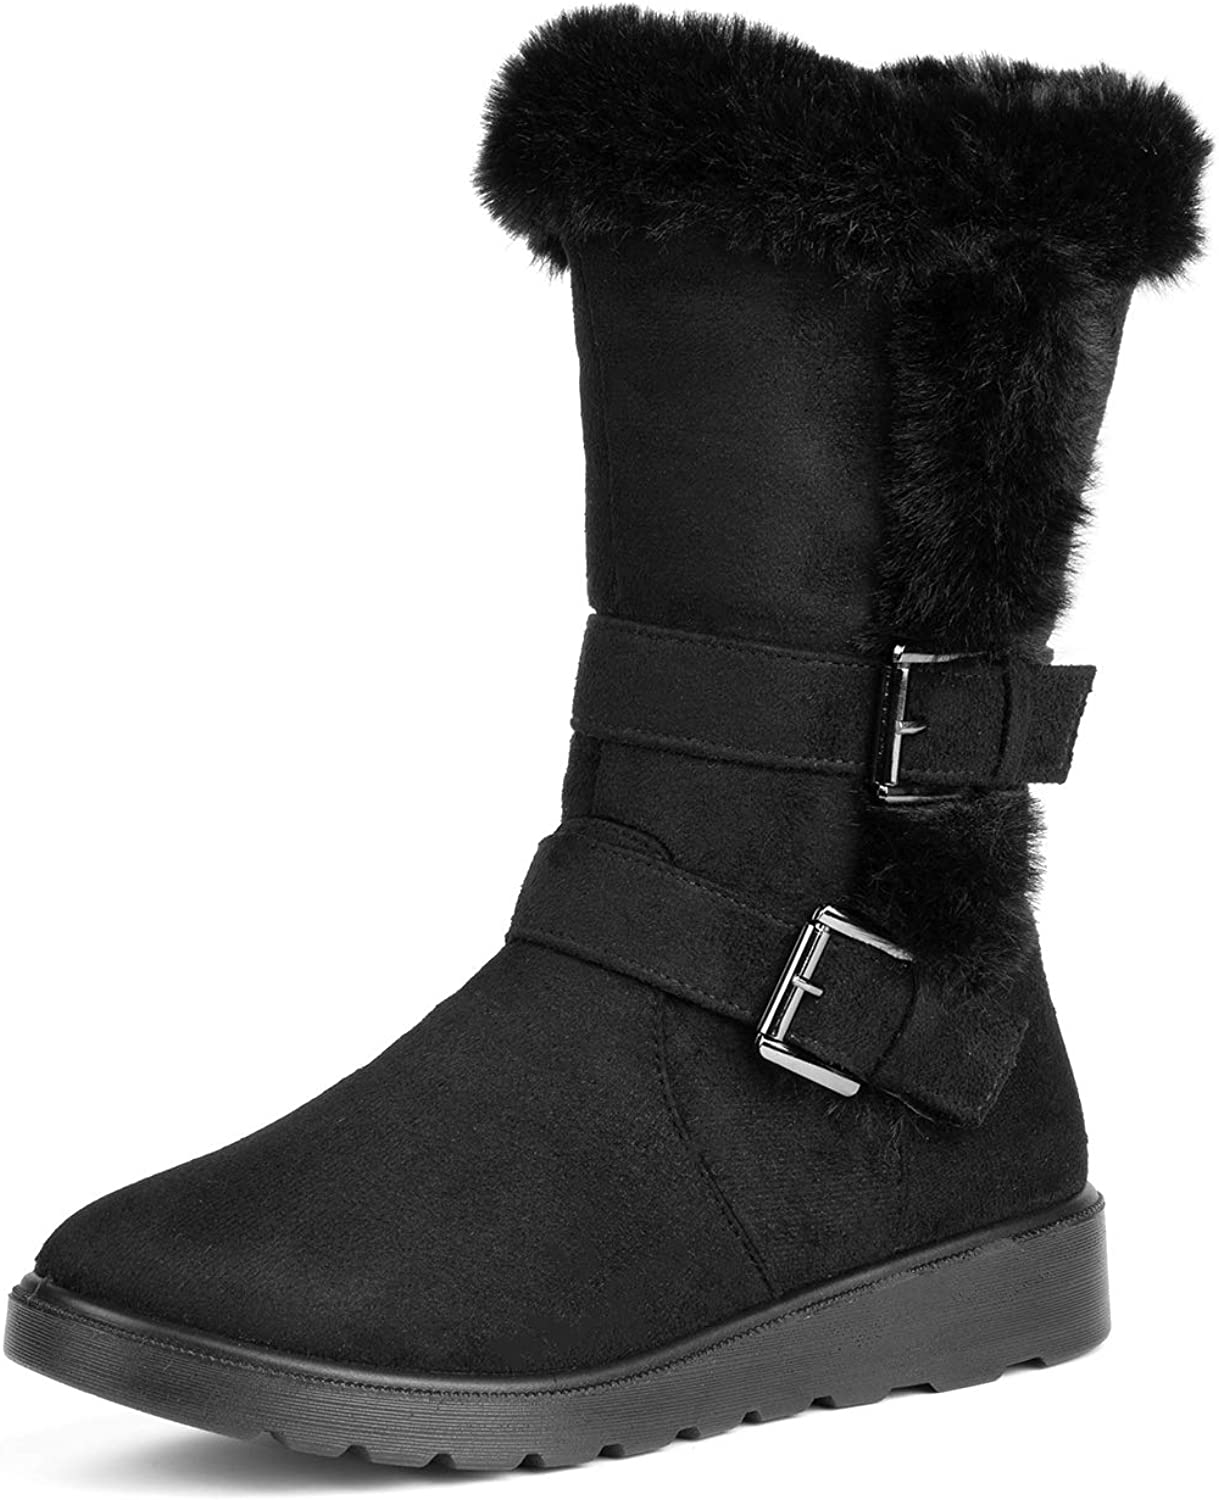 Solacozy Girls Snow Boots Womens Faux Fur Winter Boots Suede Snow Booties Classic Winter Shoes Outdoor Walking Shoes Slip-ons Botas De Invierno Para Mujer